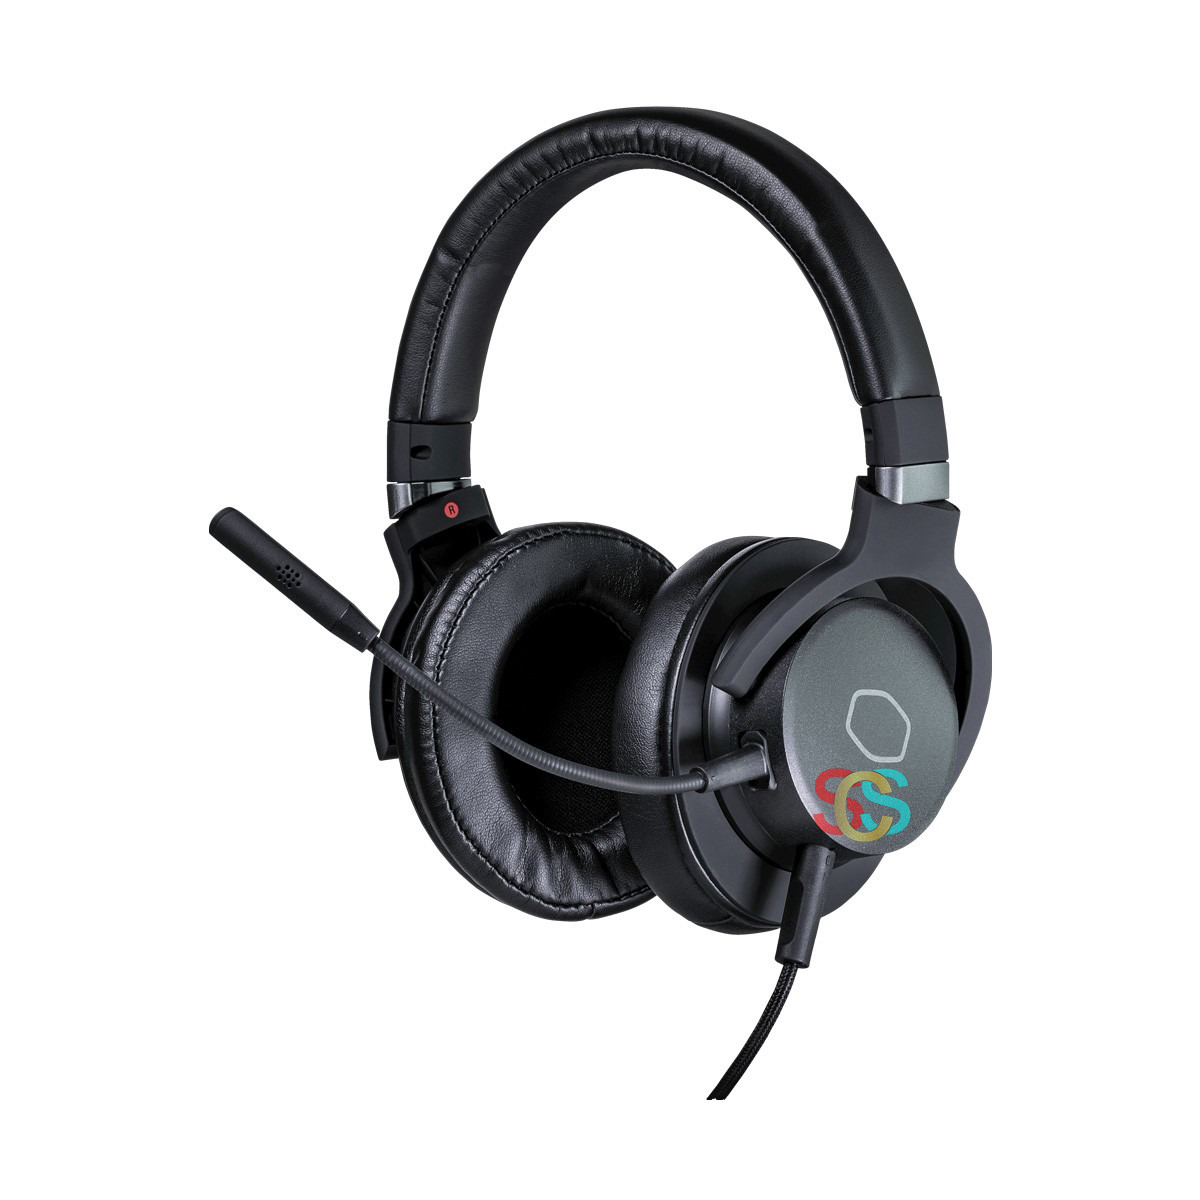 Cooler Master MH-752 Gaming Headset With Virtual 7.1